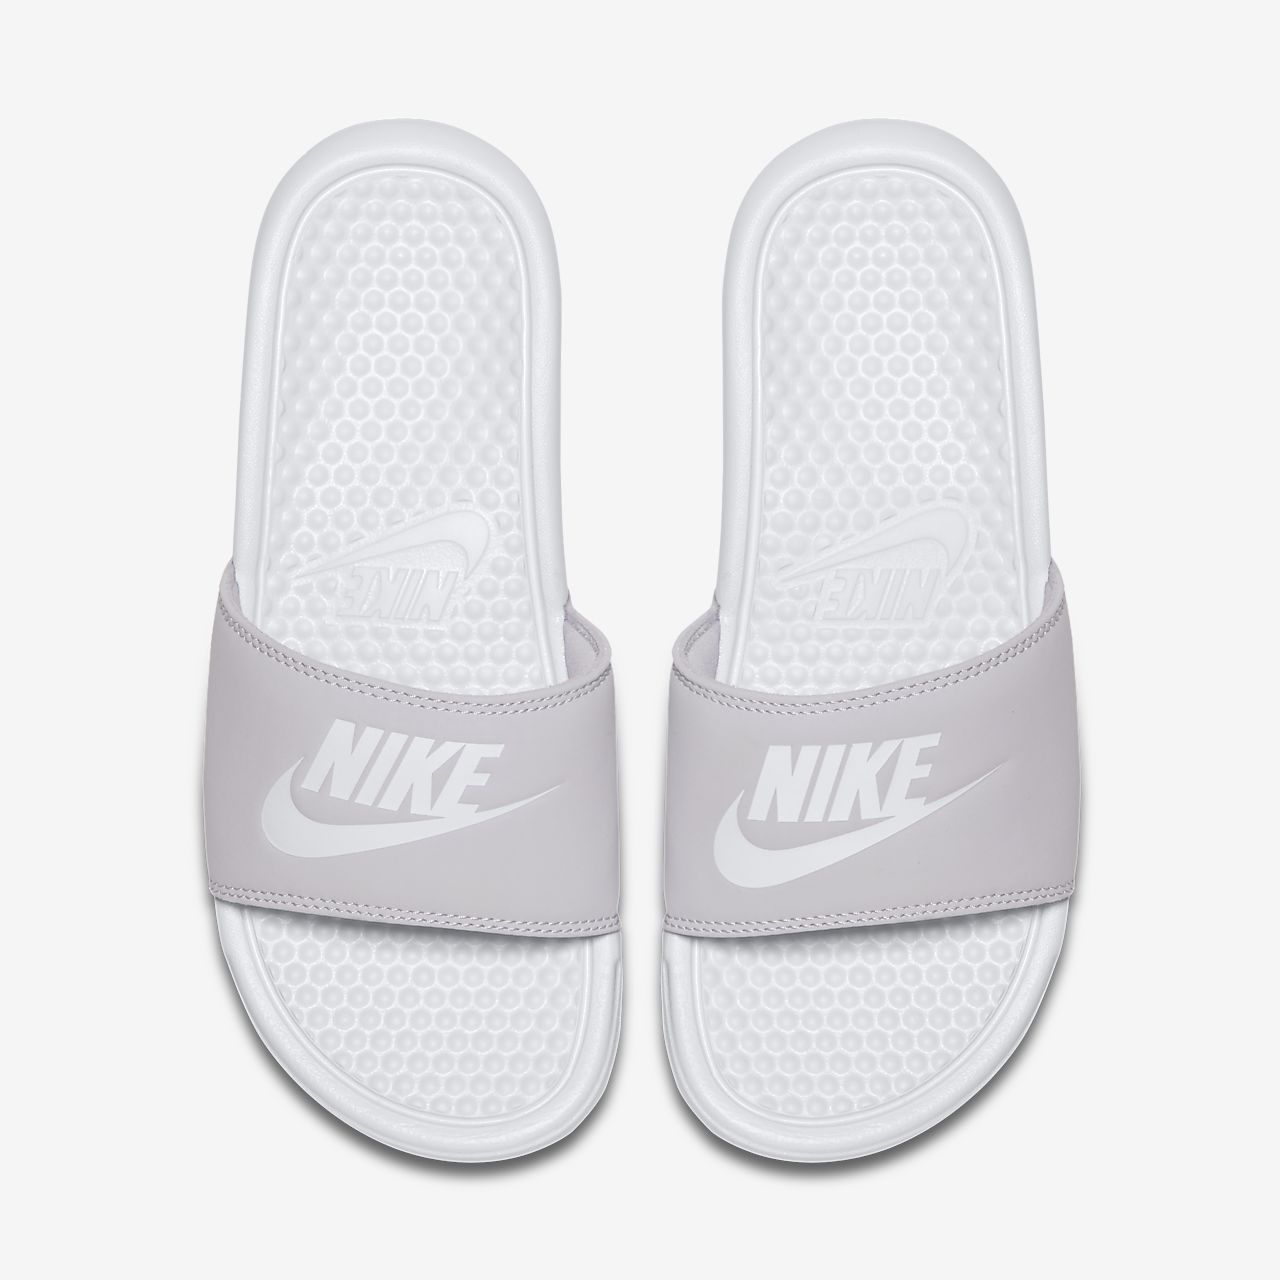 chanclas nike mujer